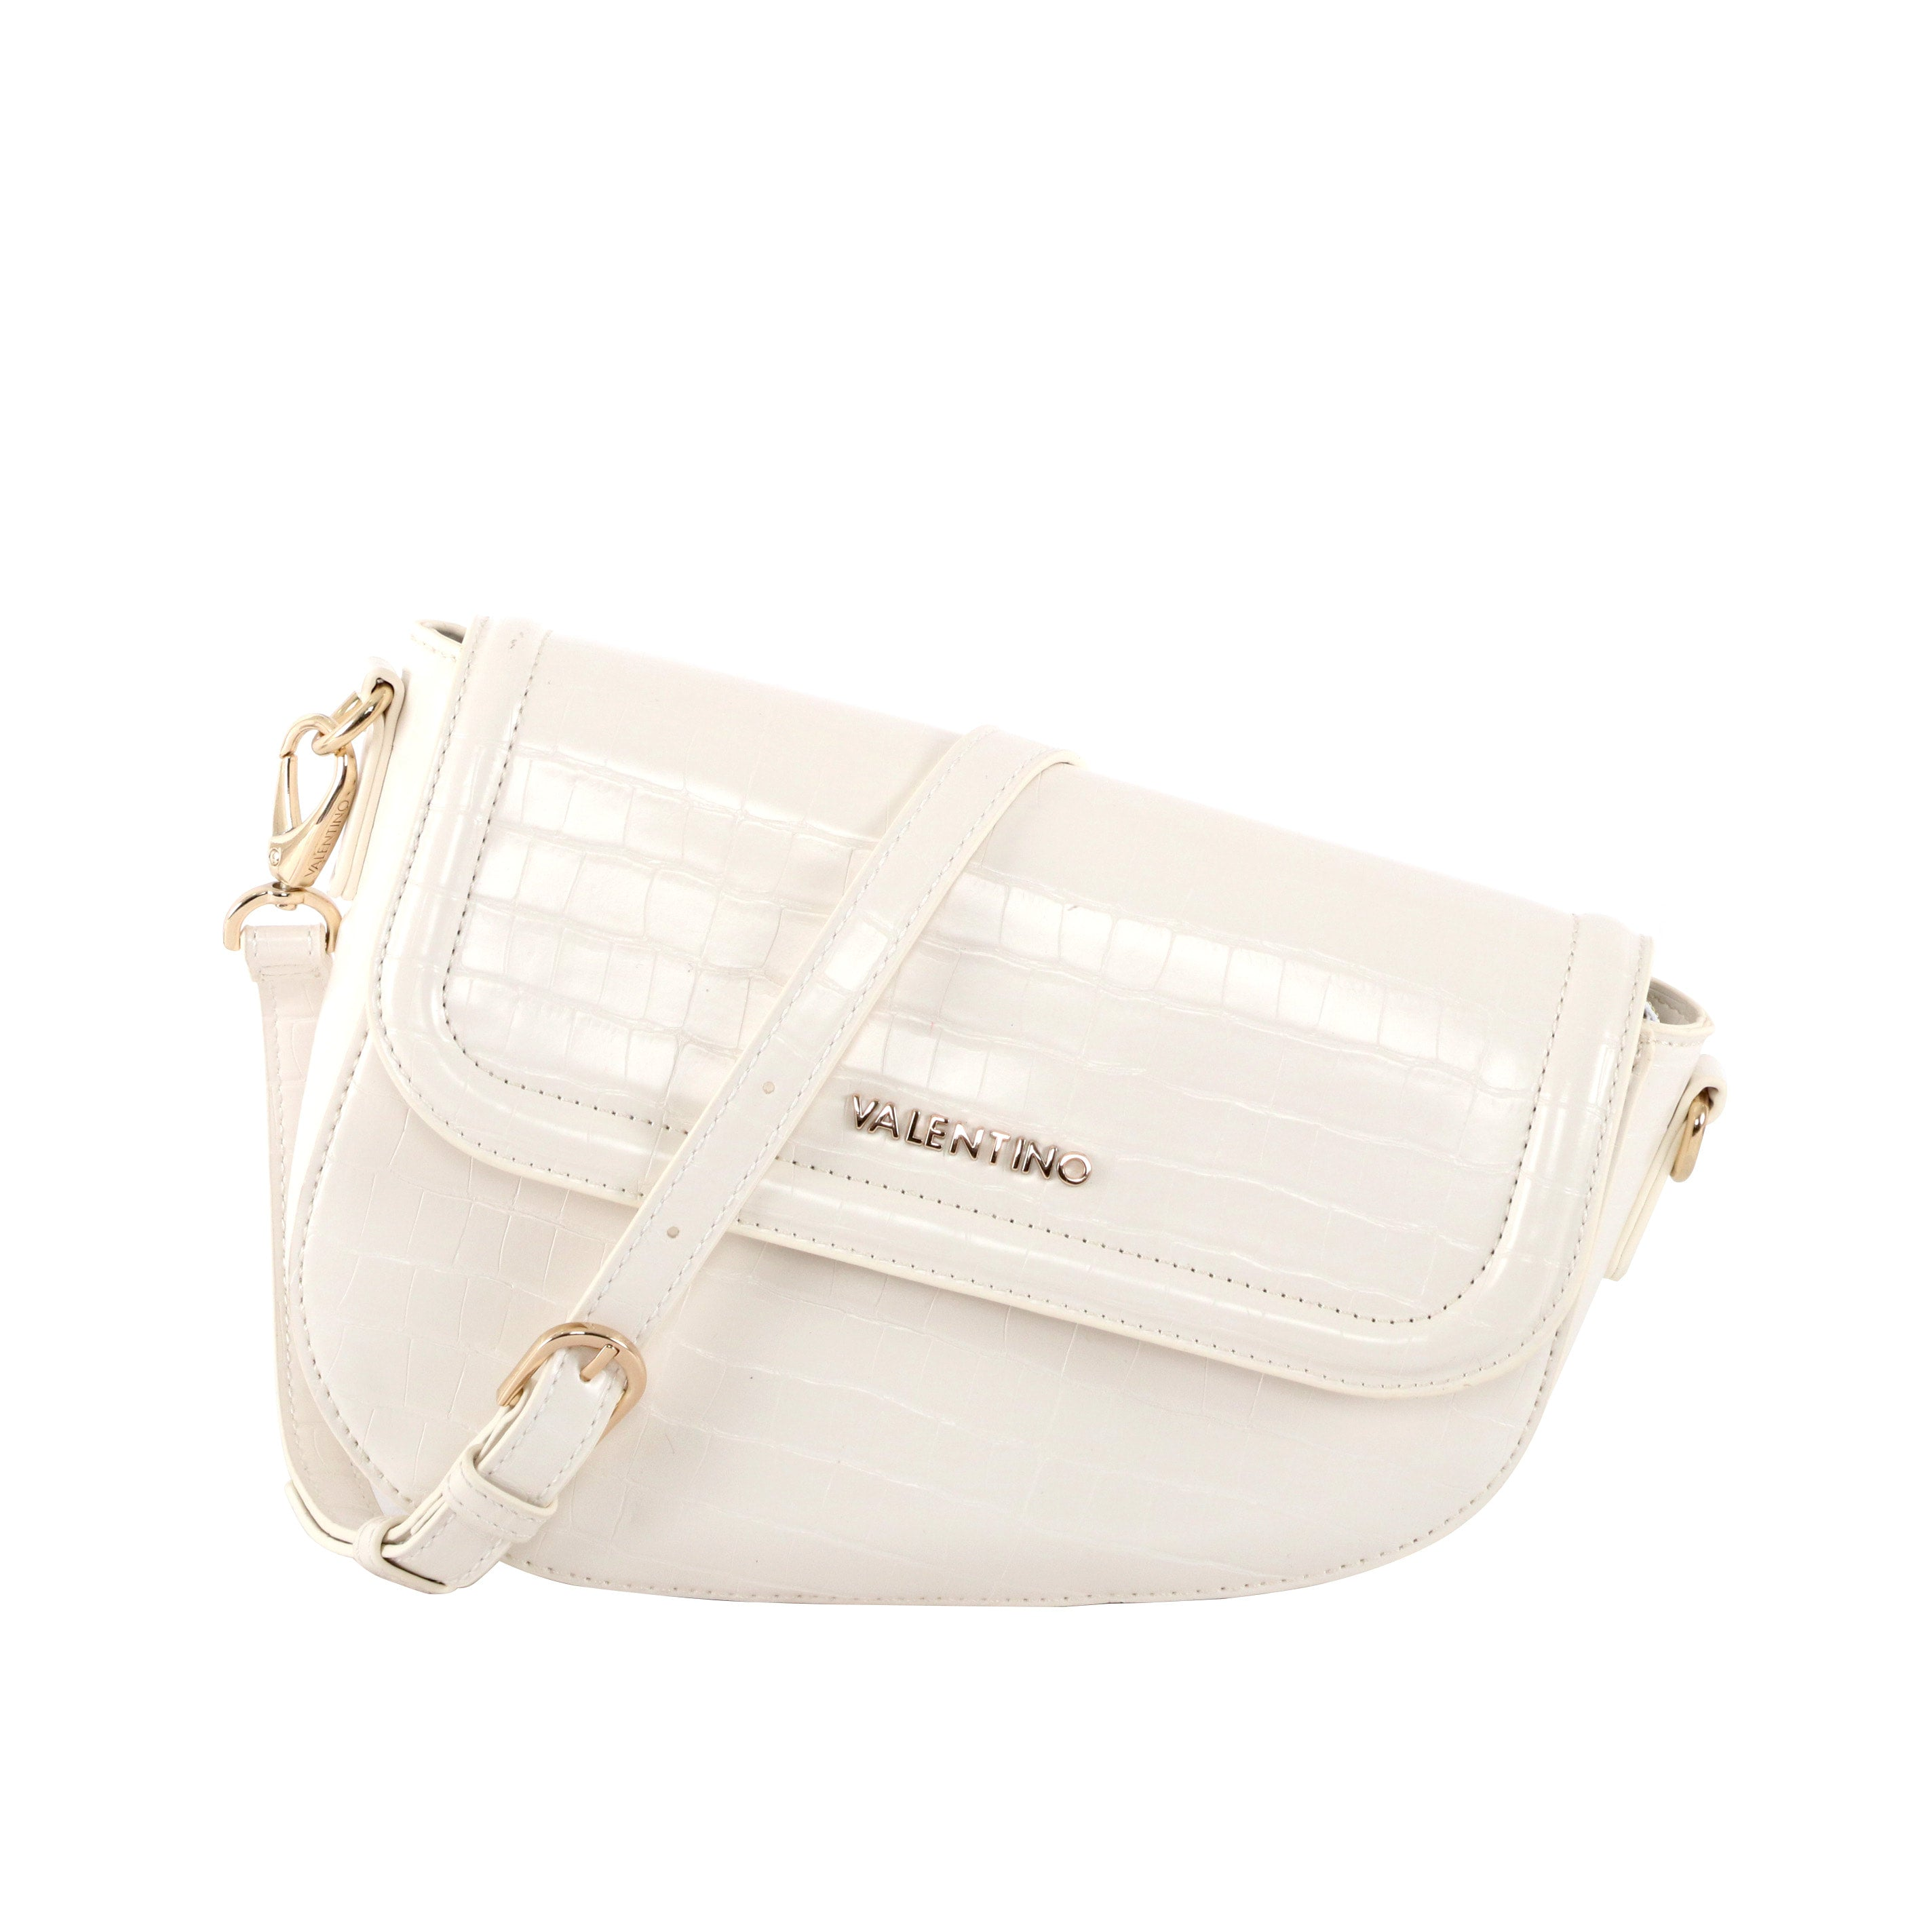 Valentino White Bicorno Bag